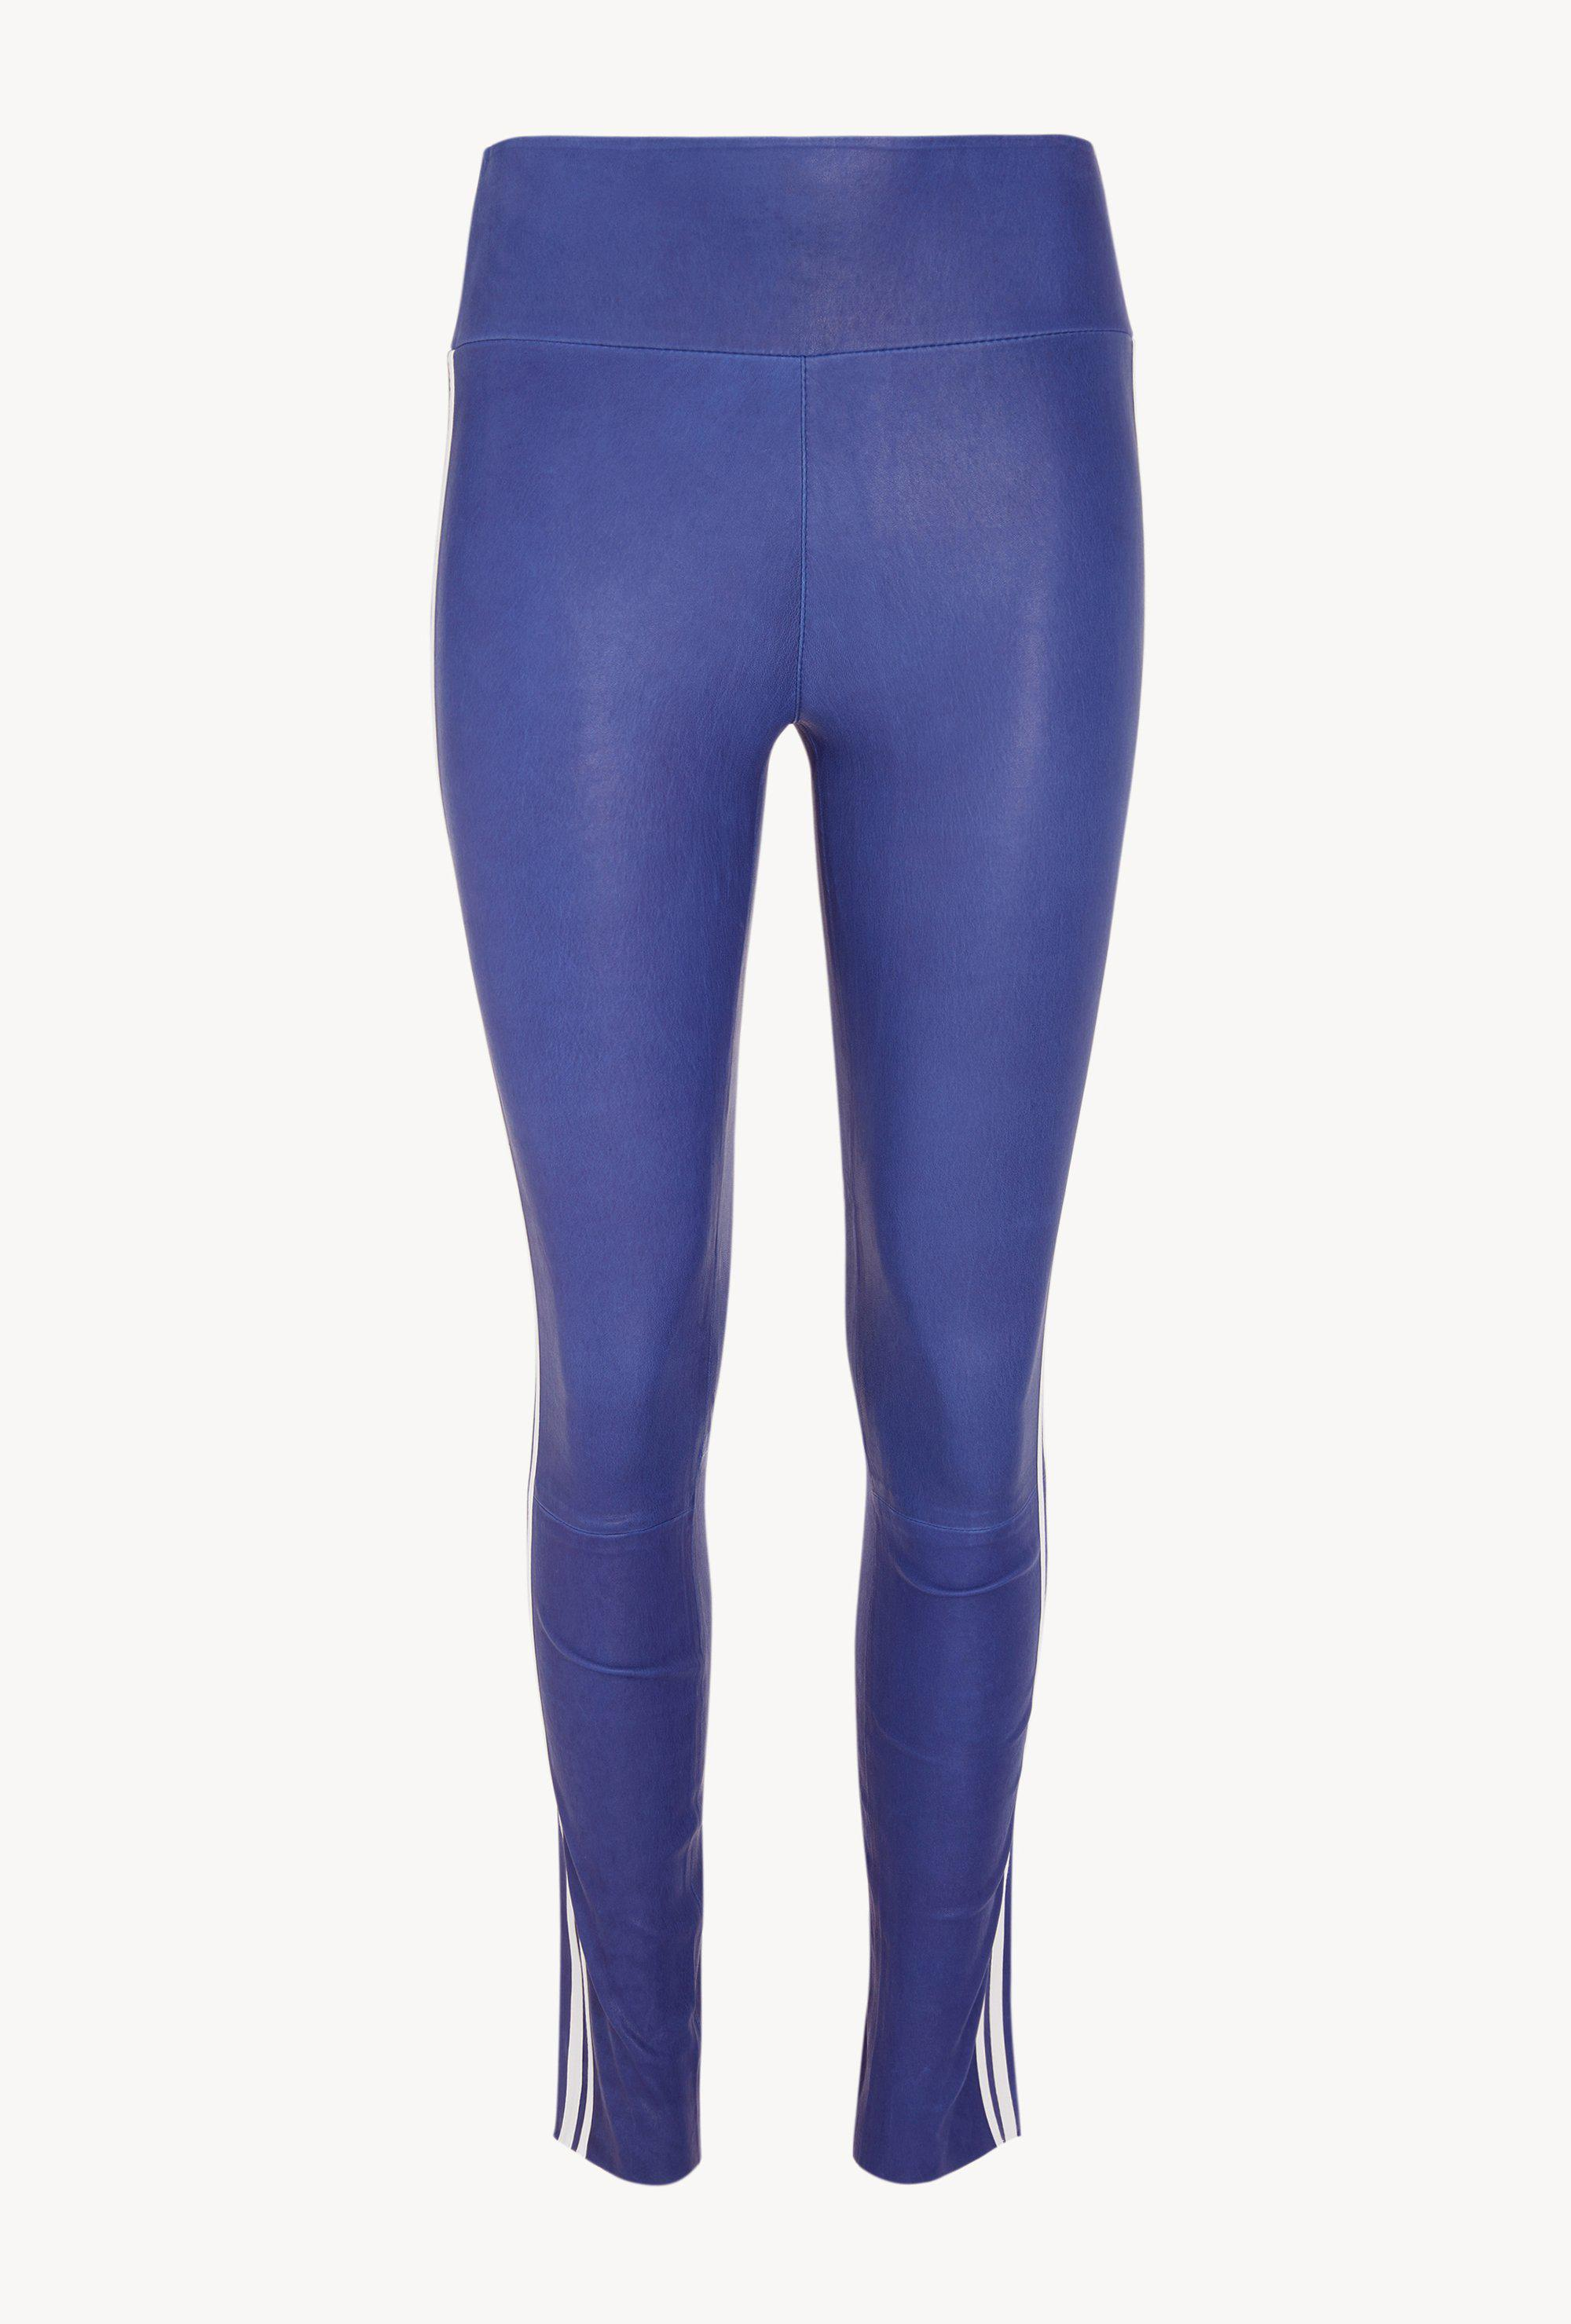 Electric Blue/White Athletic Ankle Leather Legging